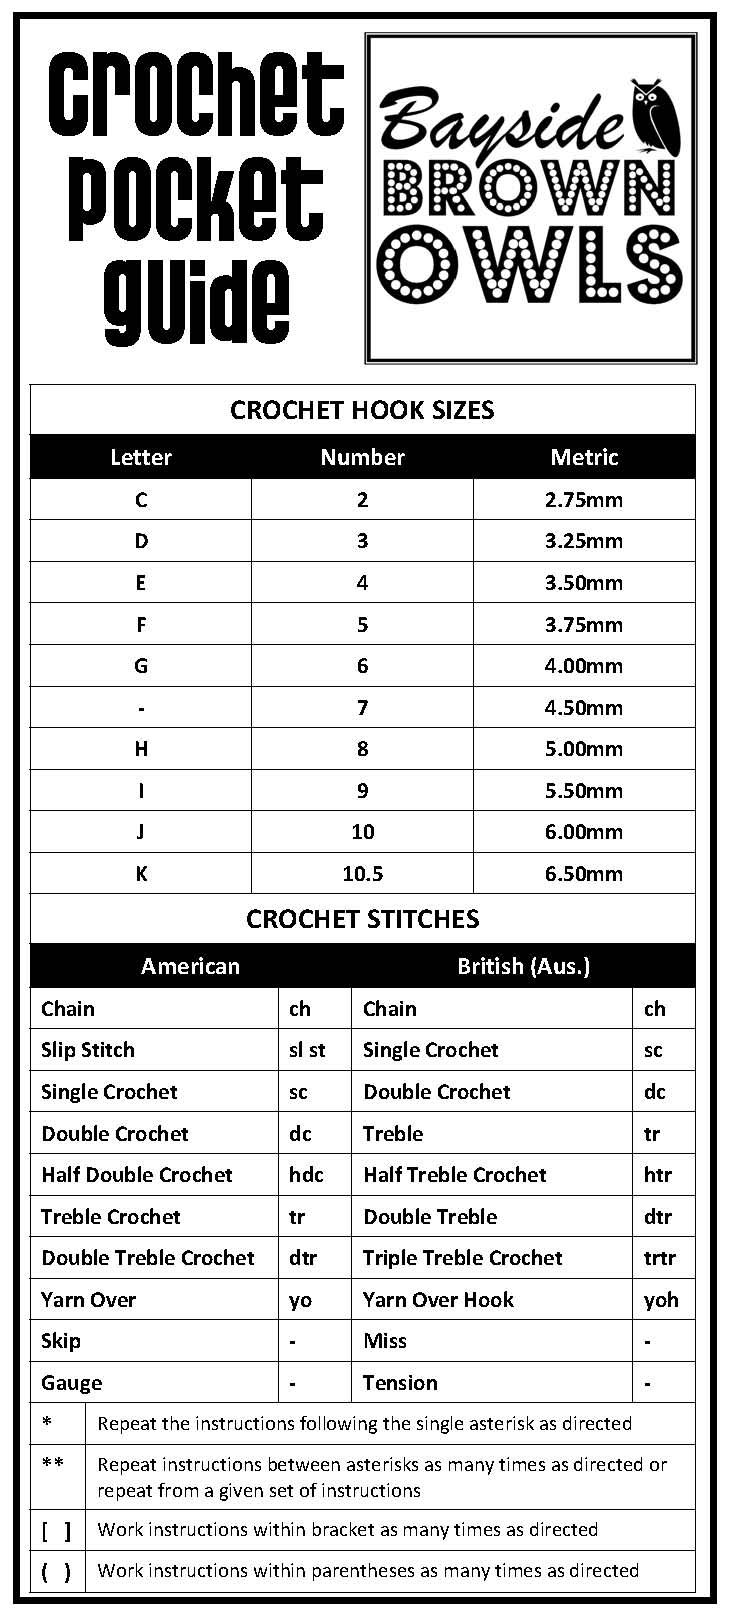 Crochet Pocket Guide Produced By Bayside Brown Owls Crochet Terminology Hook Sizes Abbreviations Crochet Stitches Crochet Instructions Crochet Hooks